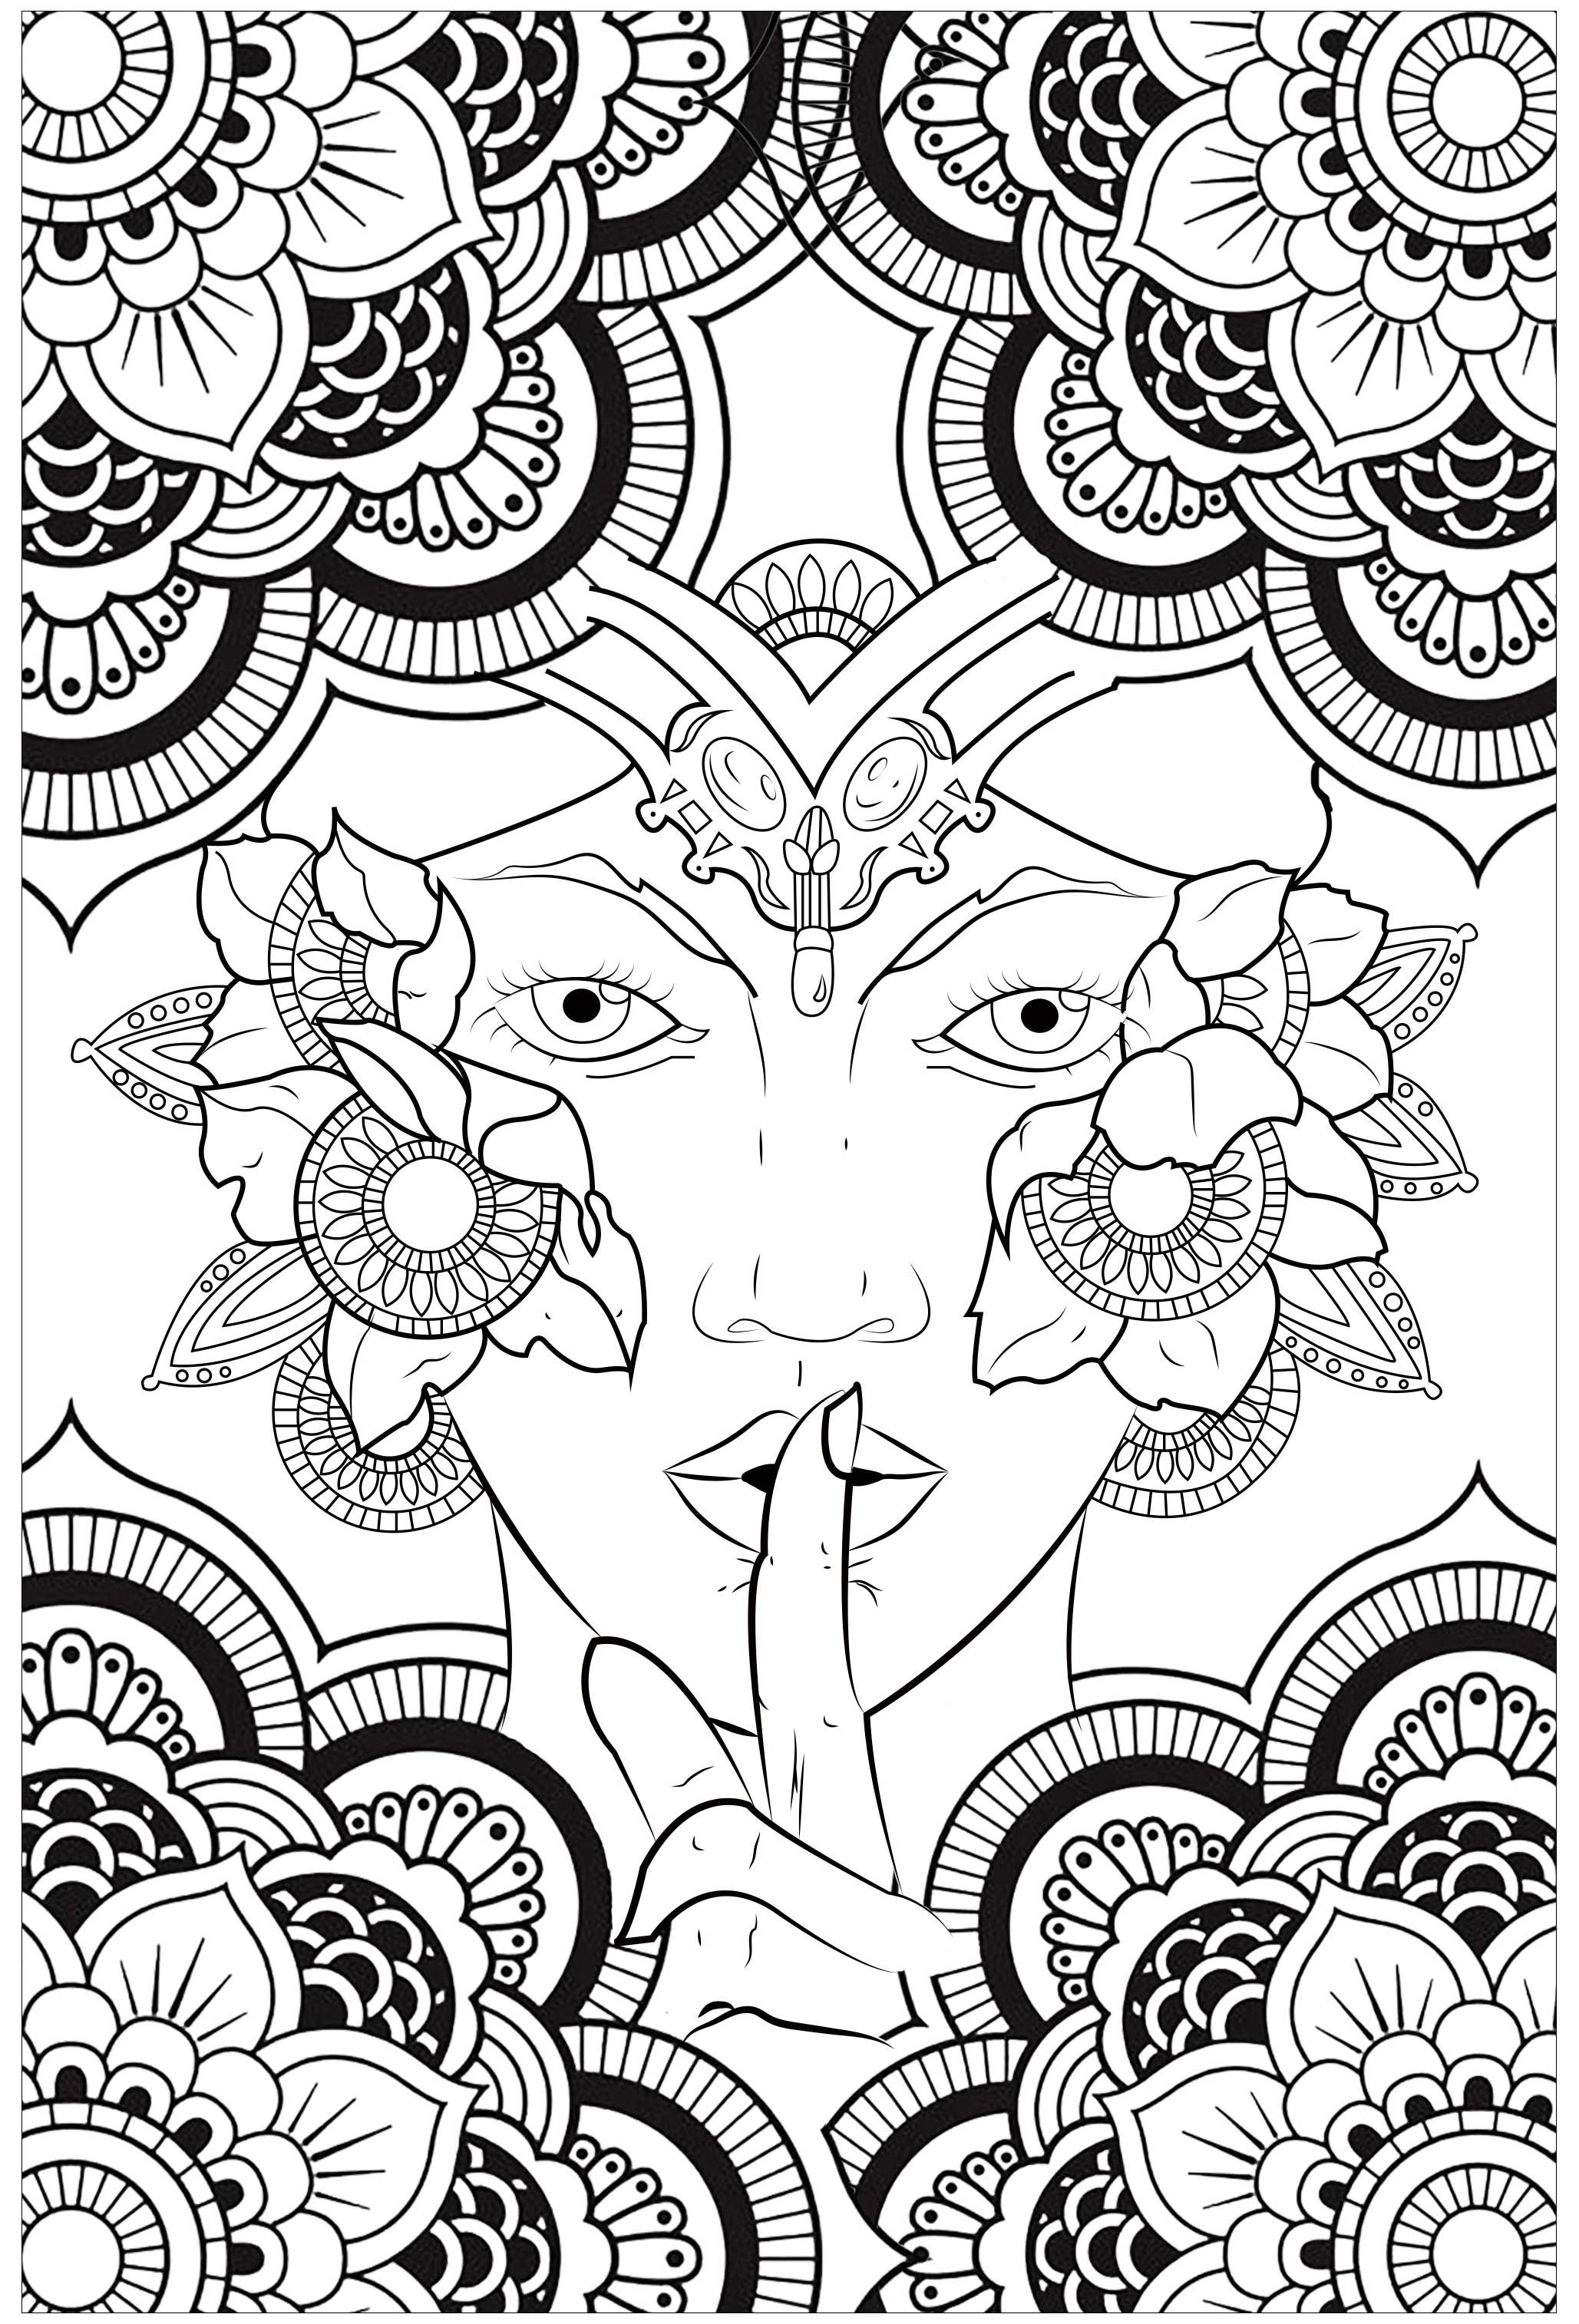 Total Relaxation With These Complex Zen And Anti Stress Coloring Pages For Adults Inspired By Nature Or Com Cool Coloring Pages Stress Coloring Coloring Pages